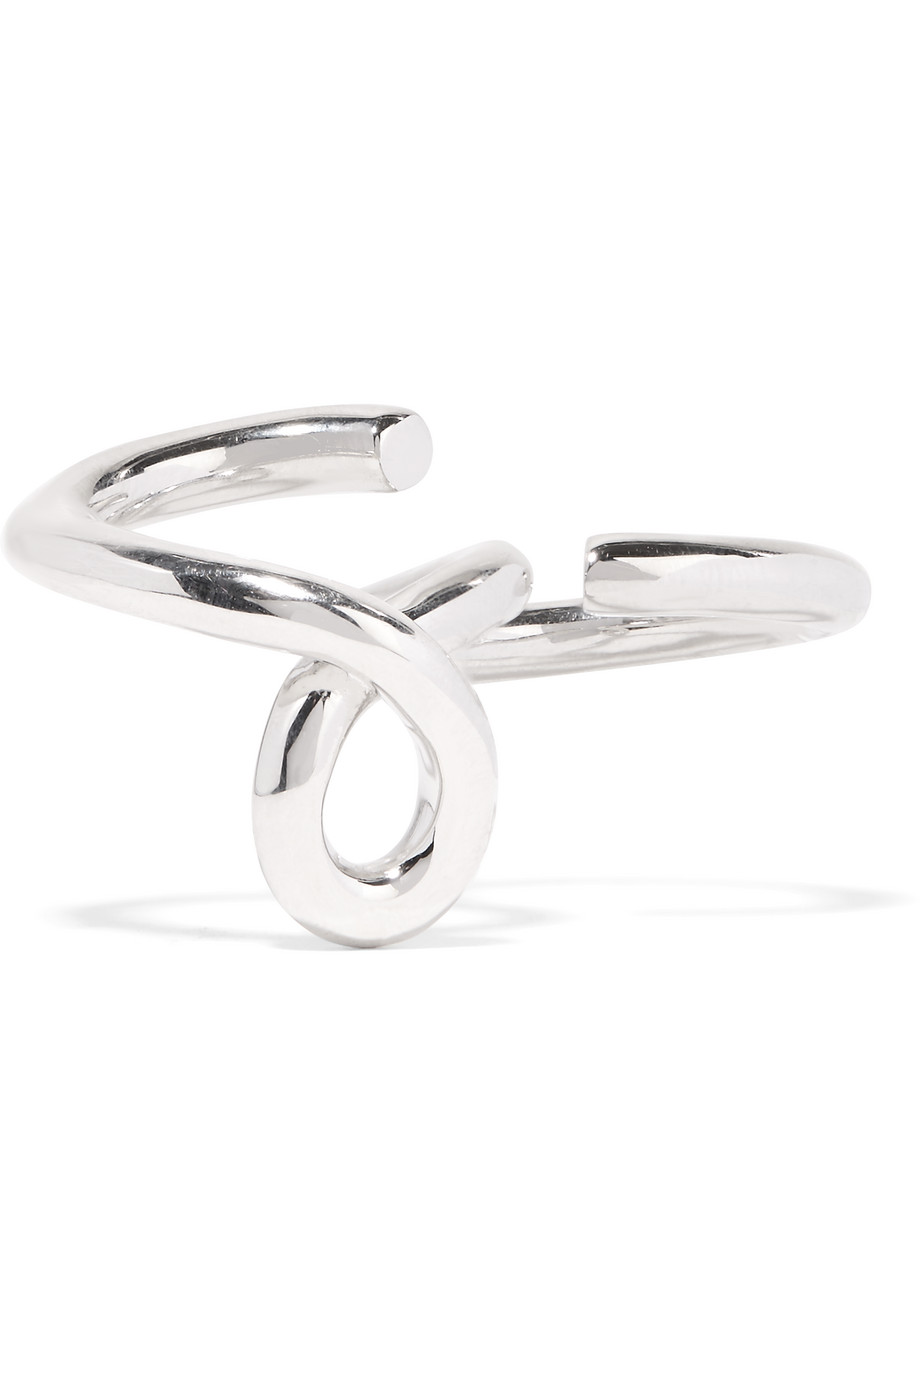 Jennifer Fisher Double Finger Loop Silver-Plated Ring, Women's